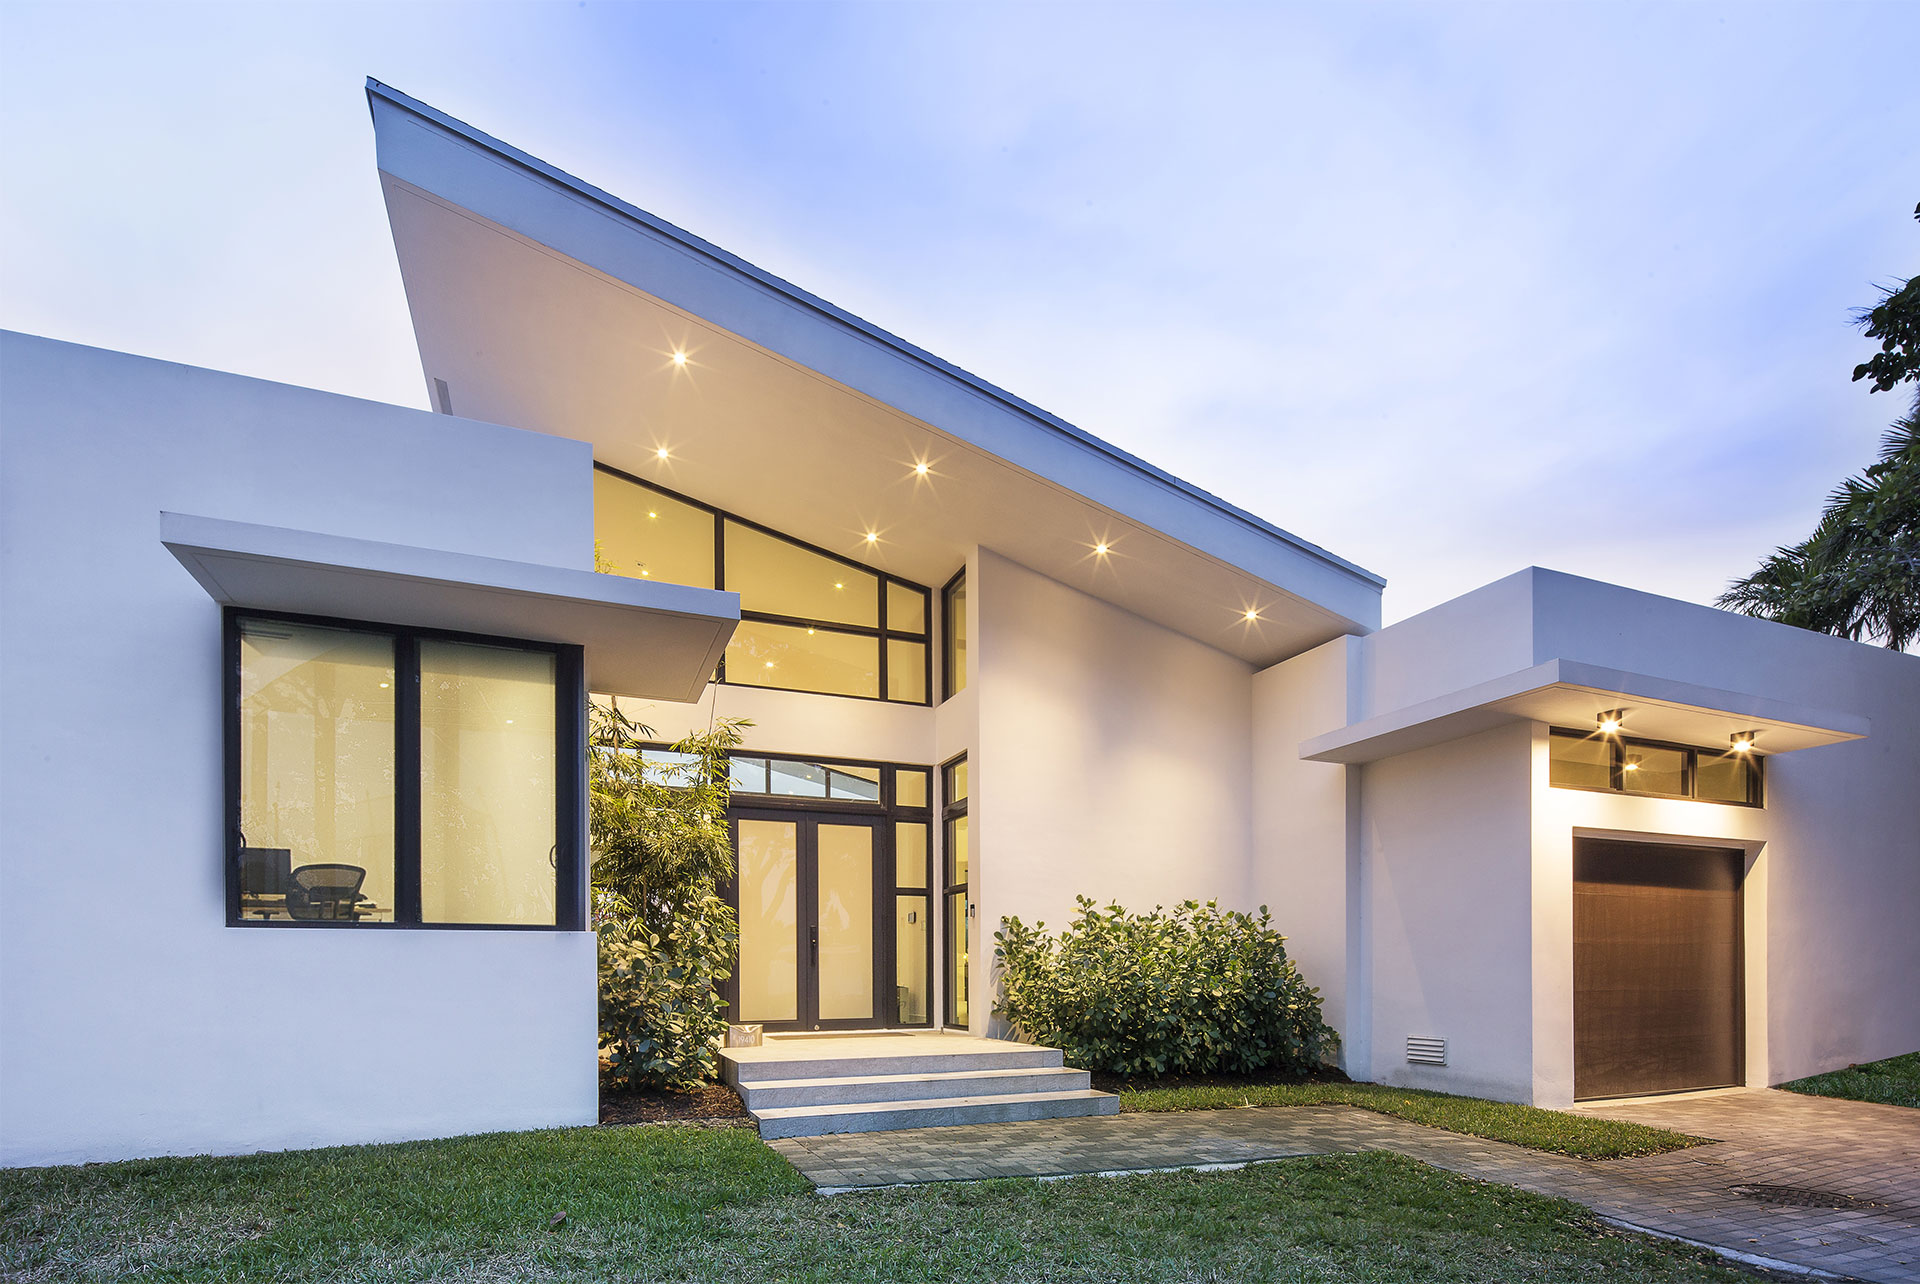 Exterior Architecture project in Sky Lake I, Florida